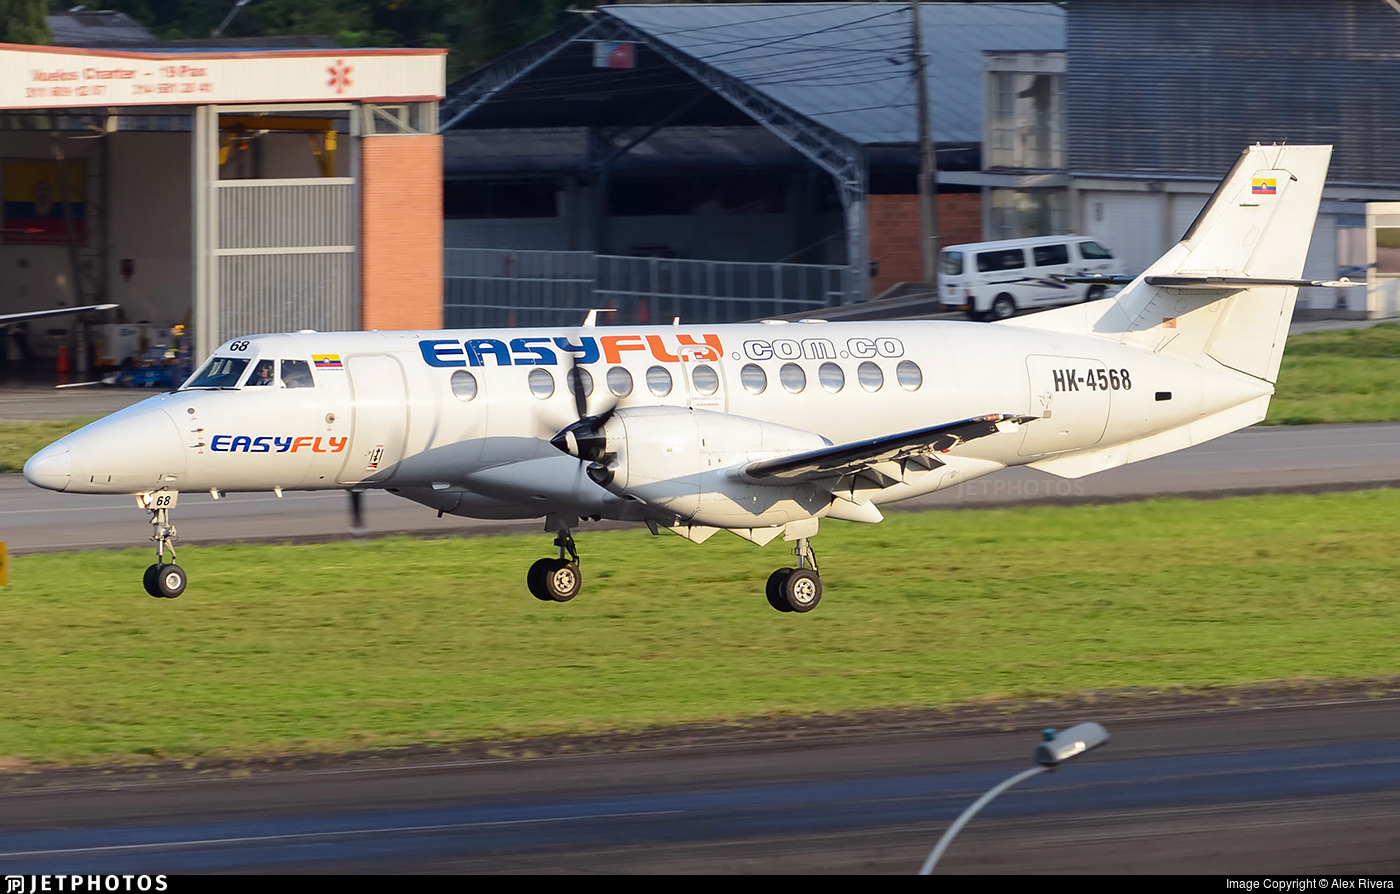 HK-4568 - British Aerospace Jetstream 41 - EasyFly